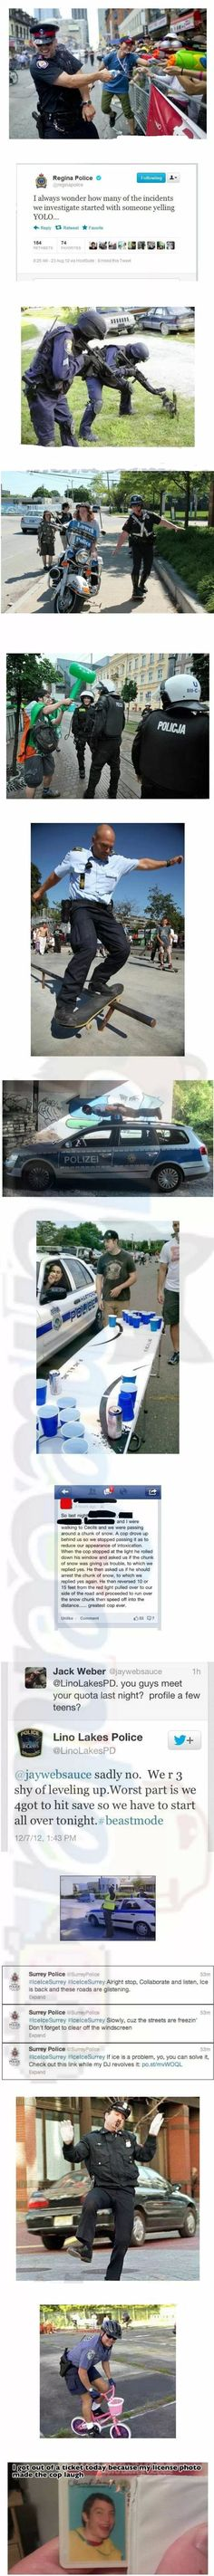 Cops are people, too! Hehe.